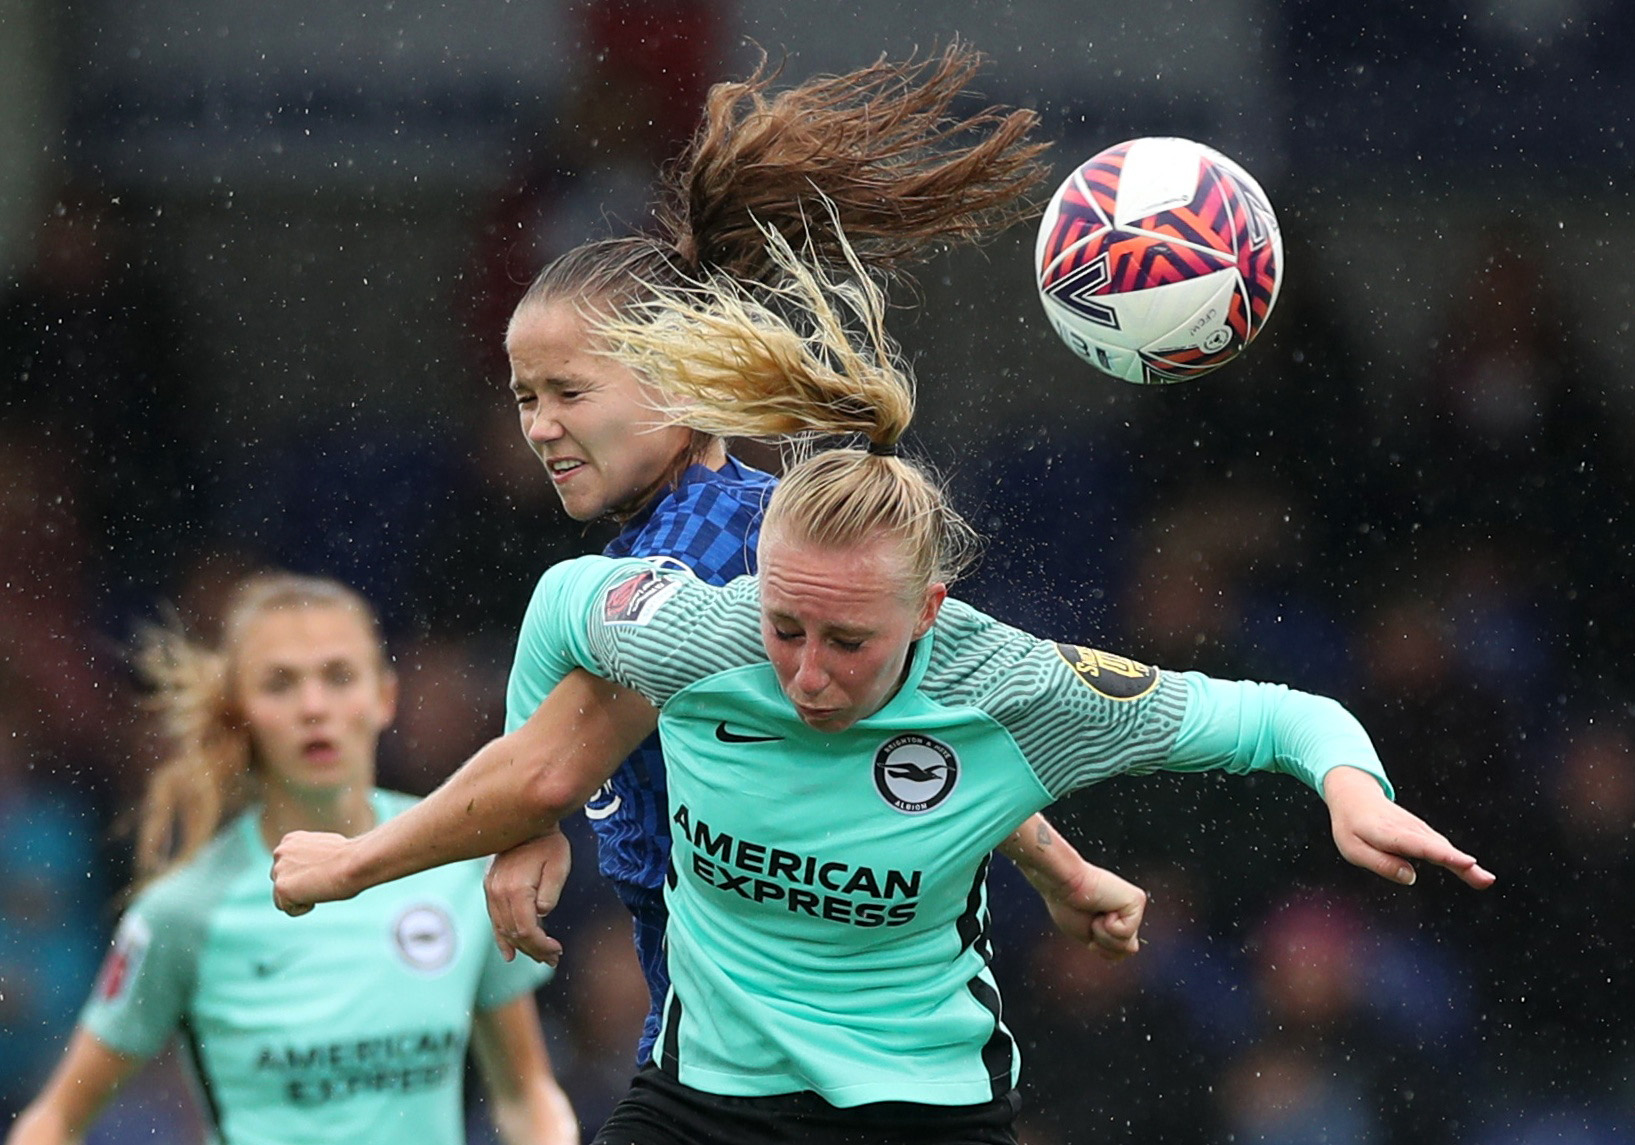 Soccer Football - Women's Super League - Chelsea v Brighton & Hove Albion - Kingsmeadow, London, Britain - October 2, 2021 Brighton and Hove Albion's Inessa Kaagman in action with Chelsea's Guro Reiten Action Images via Reuters/Peter Cziborra